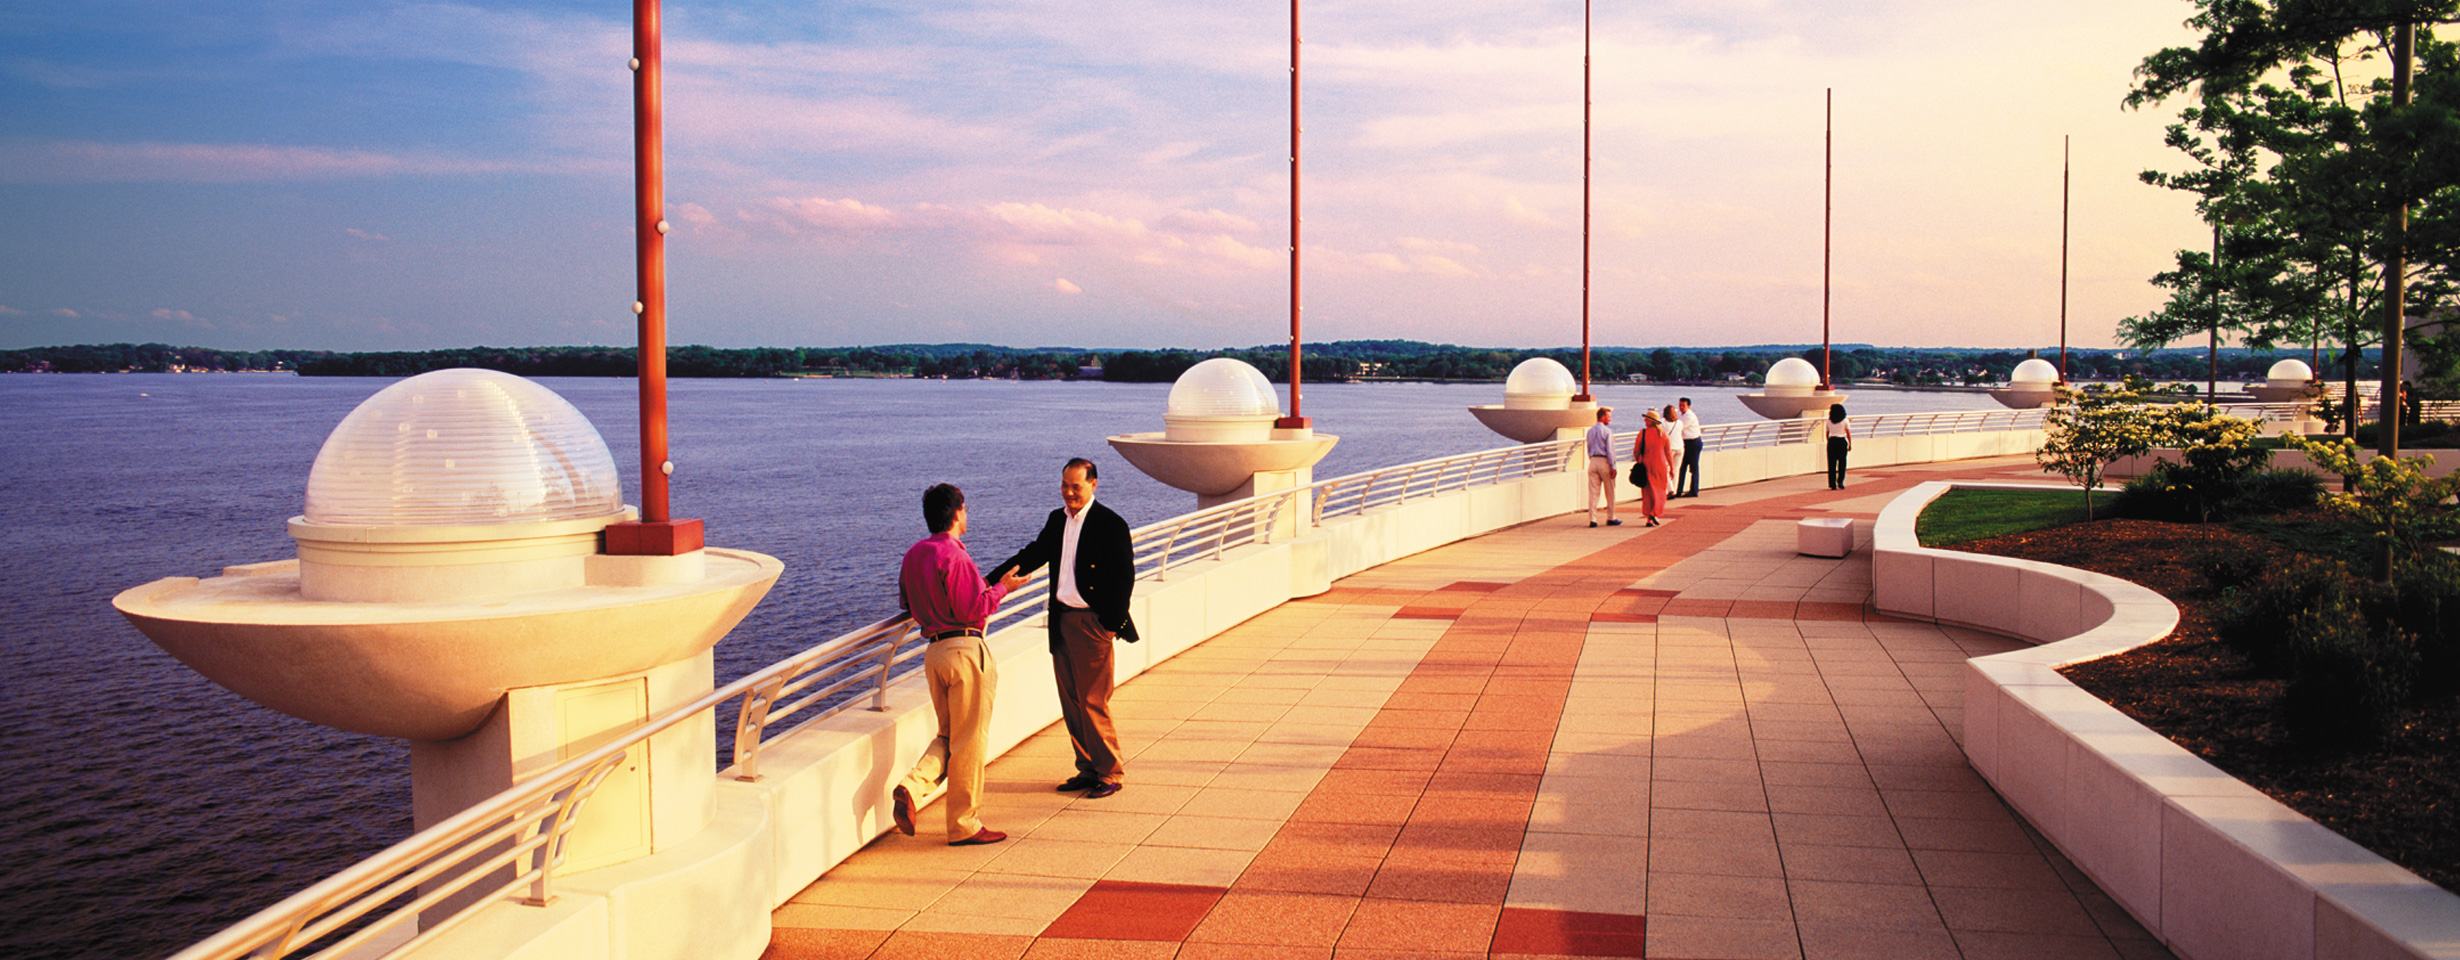 Monona Terrace Garden: Waterfront Dining